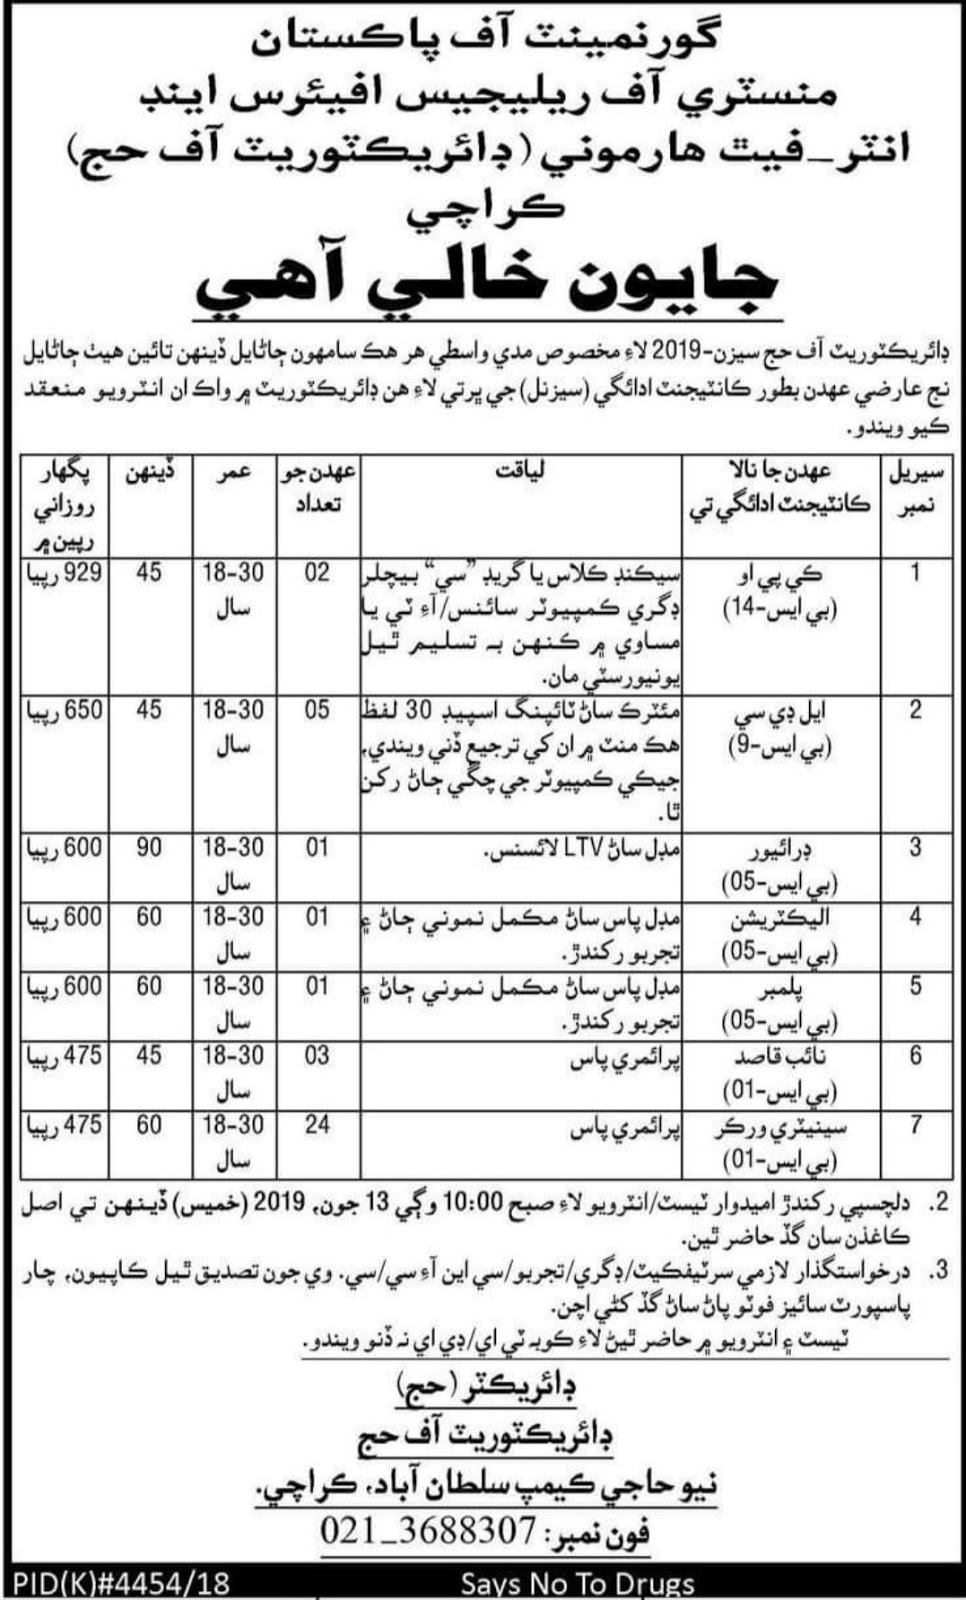 ministry of religious affairs jobs 2019,ministry of religious affairs,ministry of religious affairs pakistan jobs 2018,ministry of religious affairs pakistan,ministry of religious affairs govt of pakistan jobs 2019,ministry of religious affairs jobs,ministry of religous affair jobs in pakistan 2019 | latest jobs